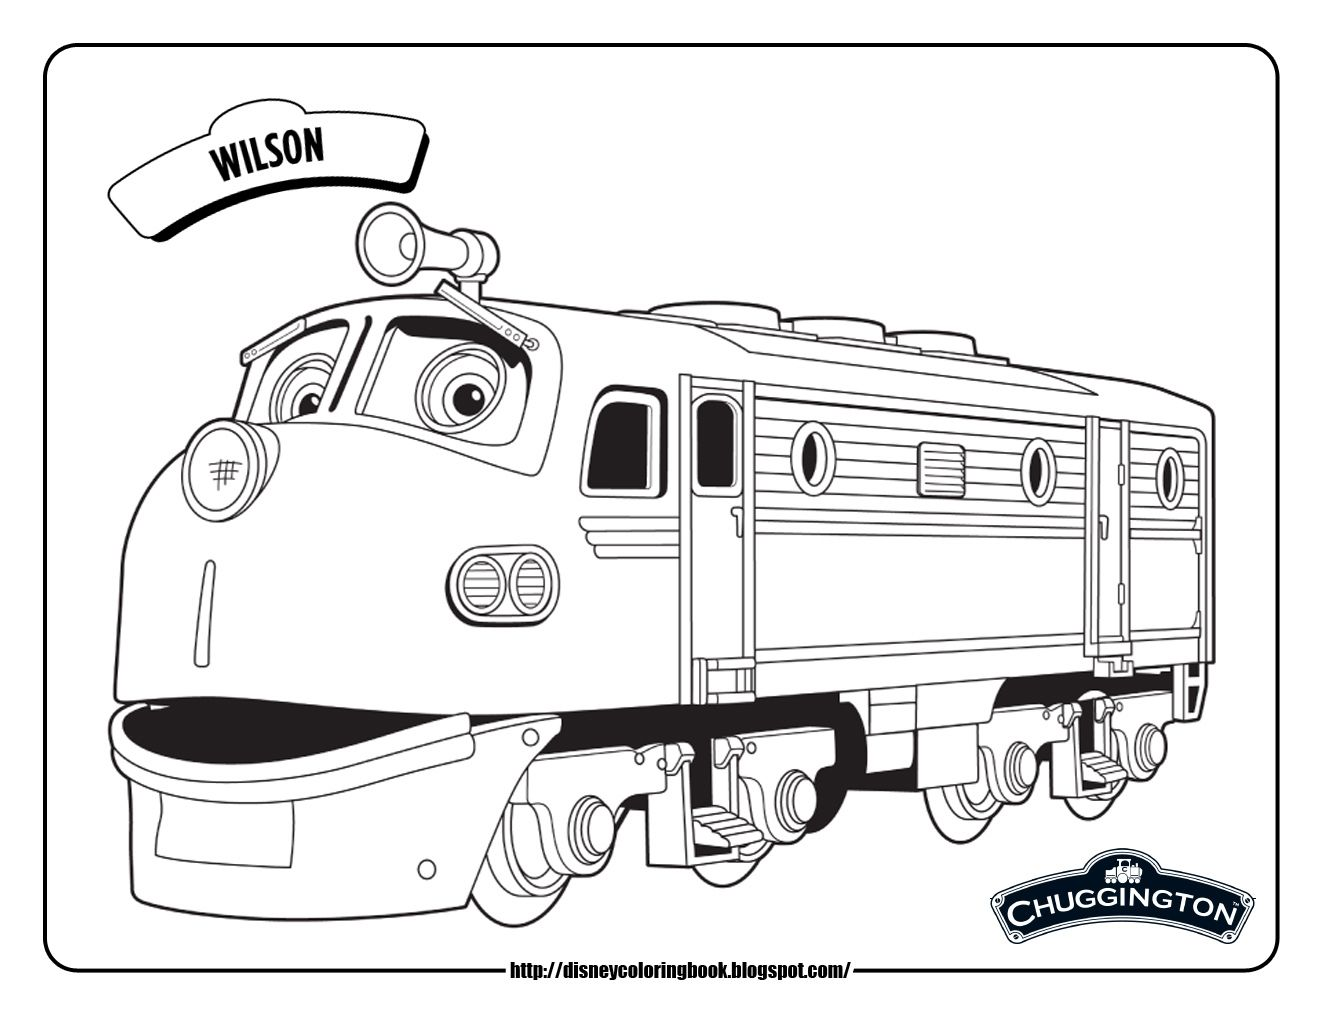 Chuggington 1 Free Disney Coloring Sheets Train Coloring Pages